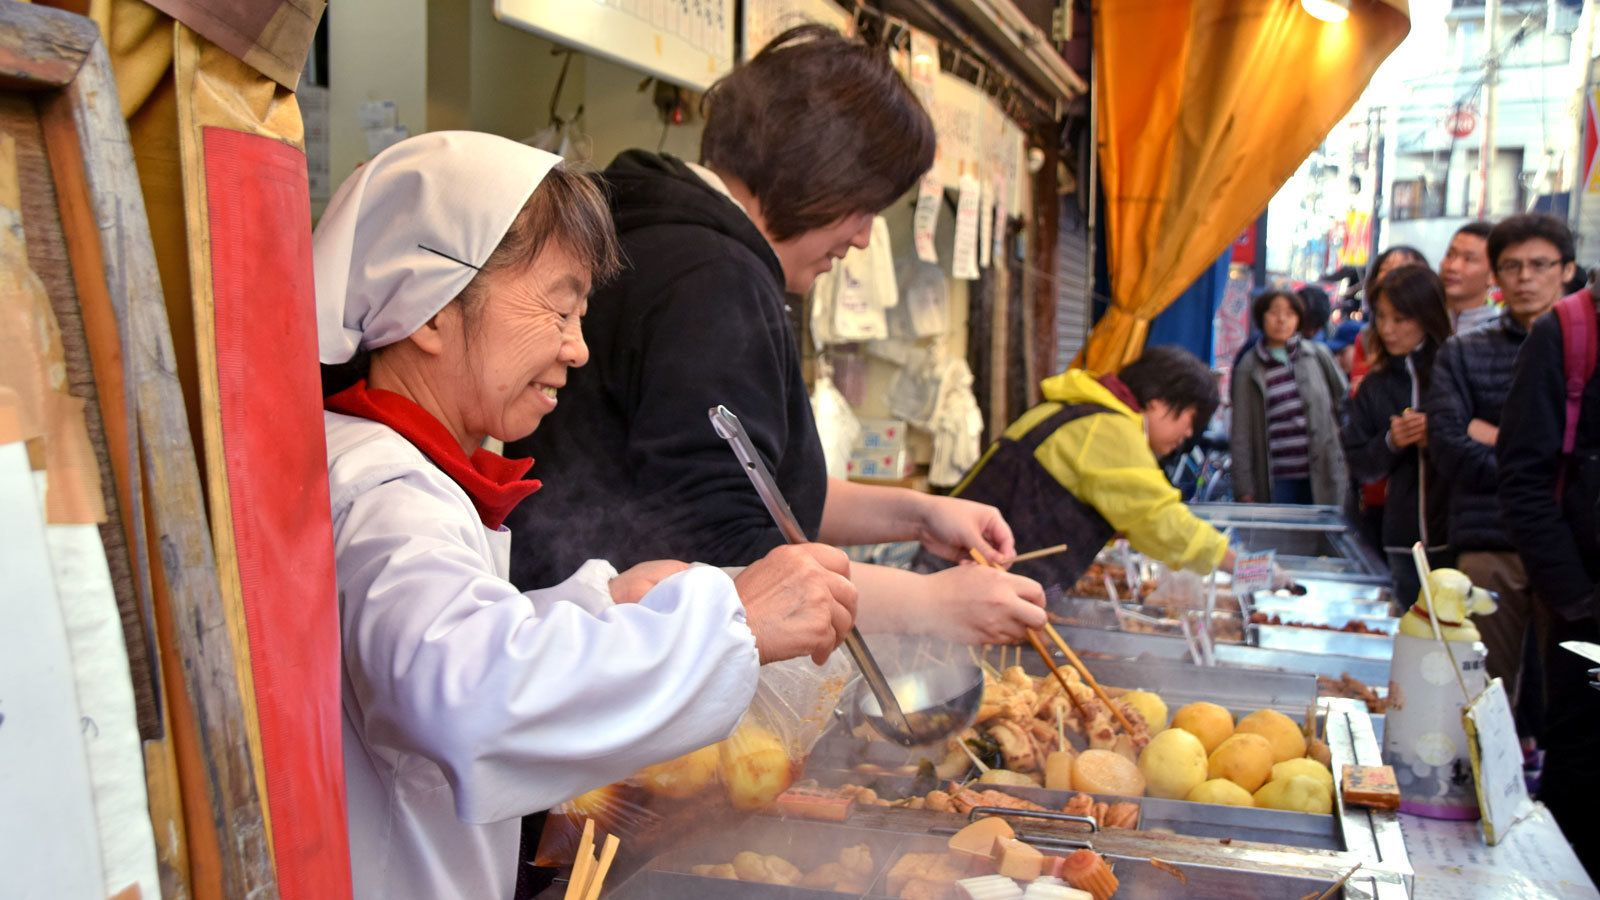 serving food at a busy street market in Japan